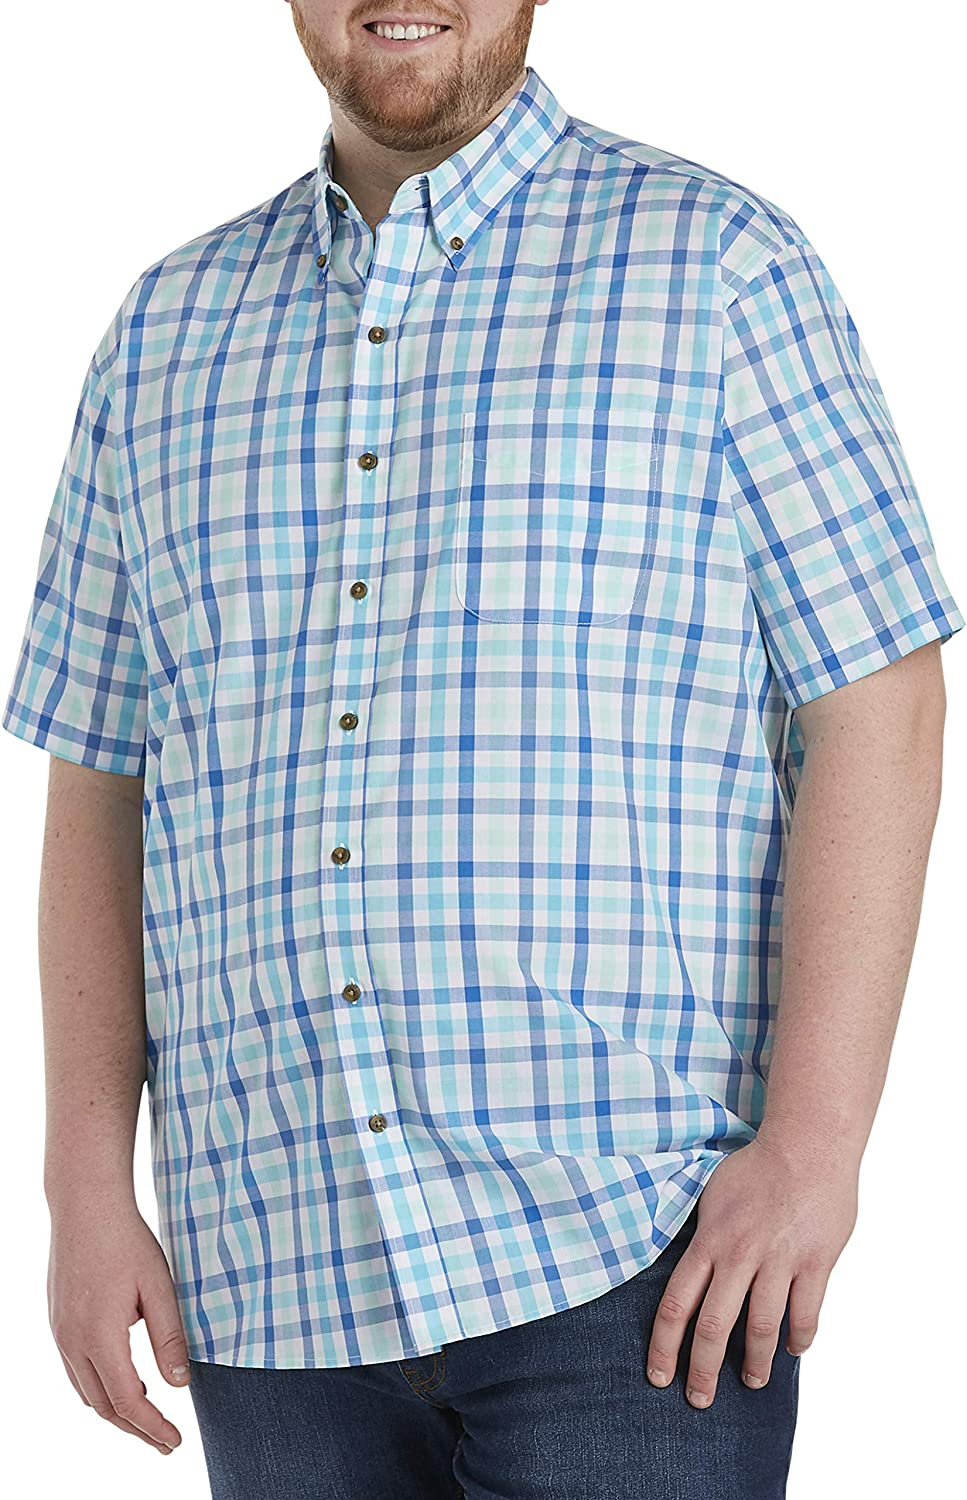 Harbor Bay by DXL Big and Tall Easy-Care Multi Check Sport Shirt, Blue